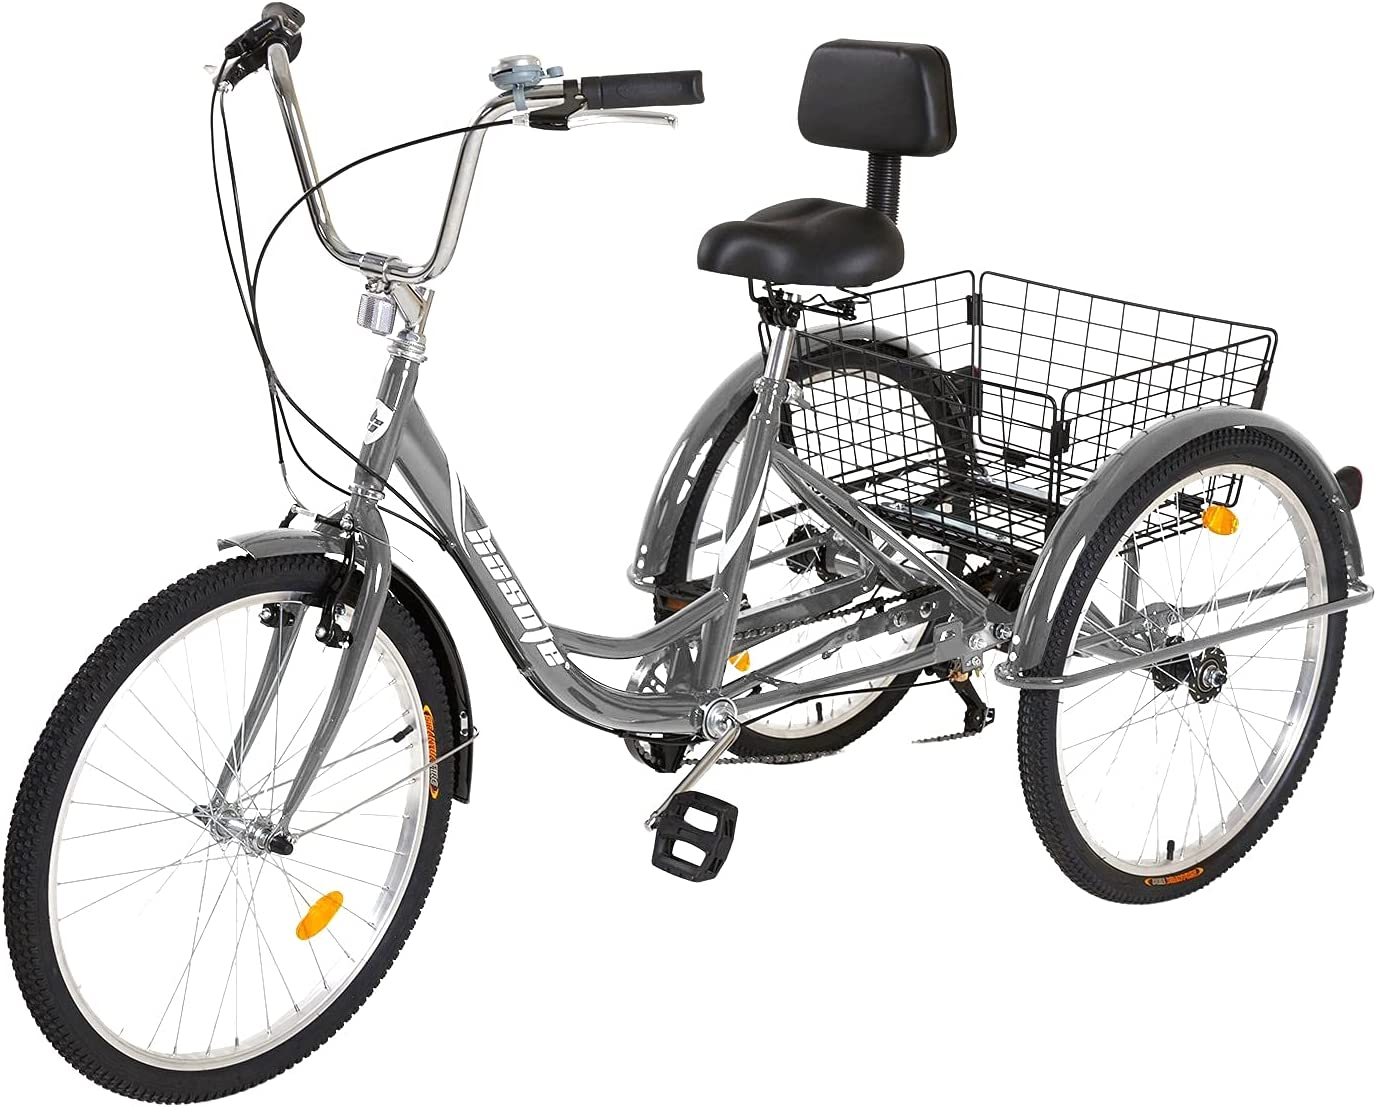 Max 50% OFF hosote Adult Tricycle 24 inch Bike Cruiser Wheels Shiman Three Over item handling ☆